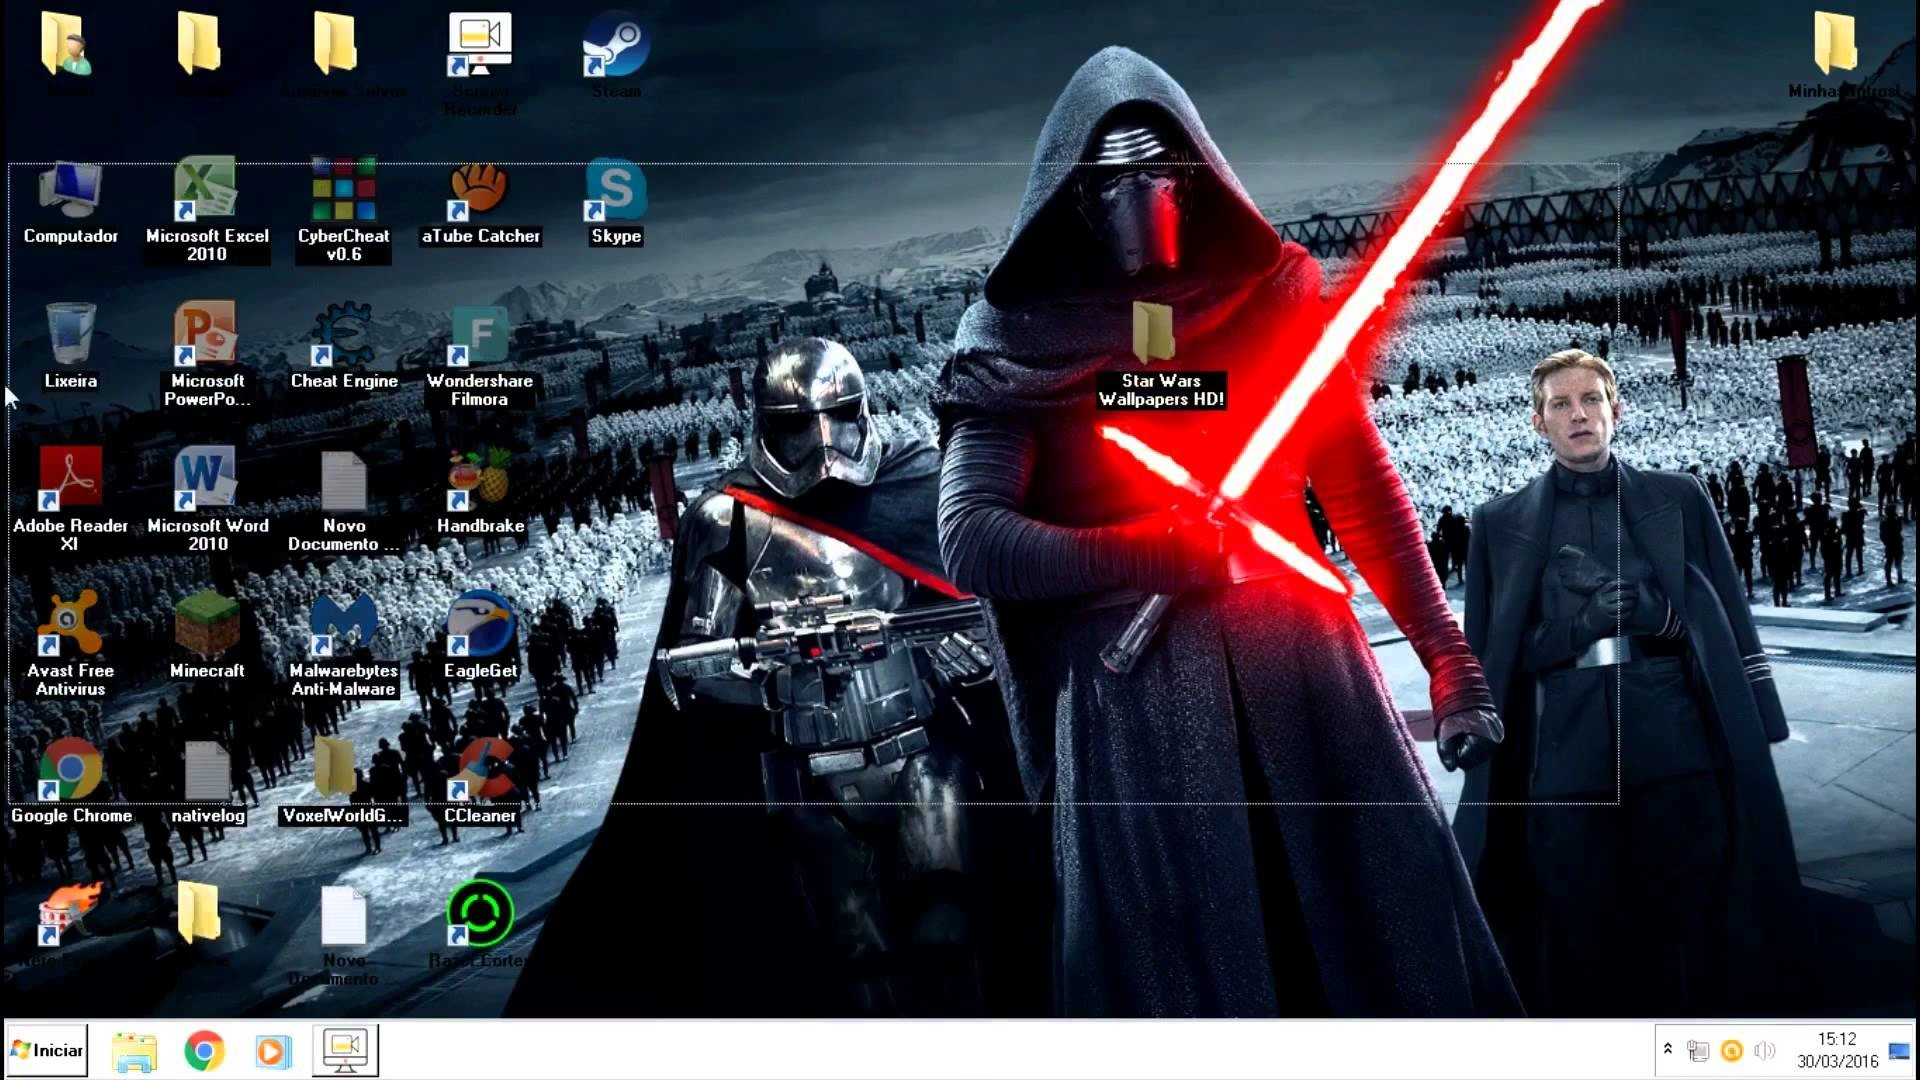 Star Wars Live Wallpaper Android (70+ images)